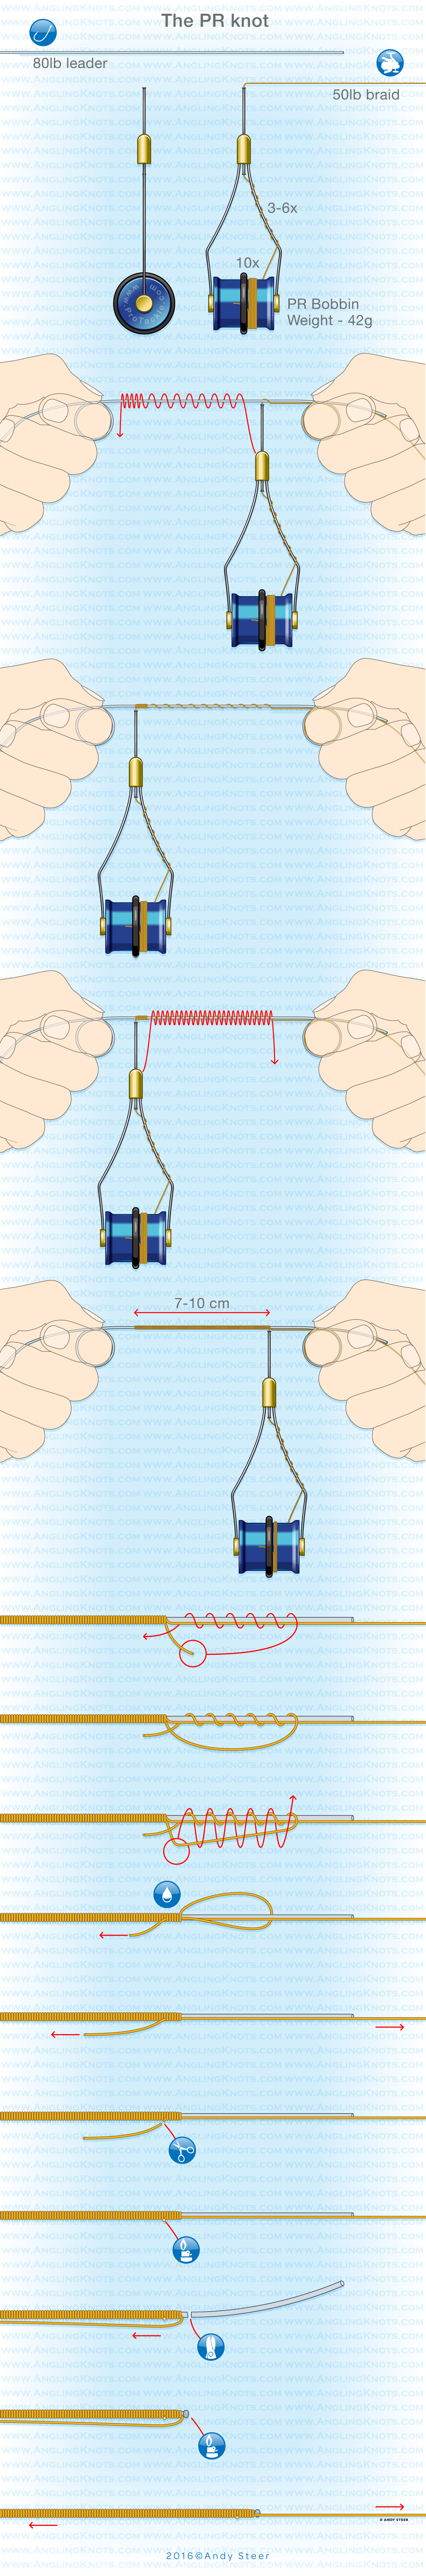 The Pr Or Page Ranking Knot Is A Very Strong And Low Profile Tying Diagrams Http Wwwfintalkcom Fishingknots Palomarknot